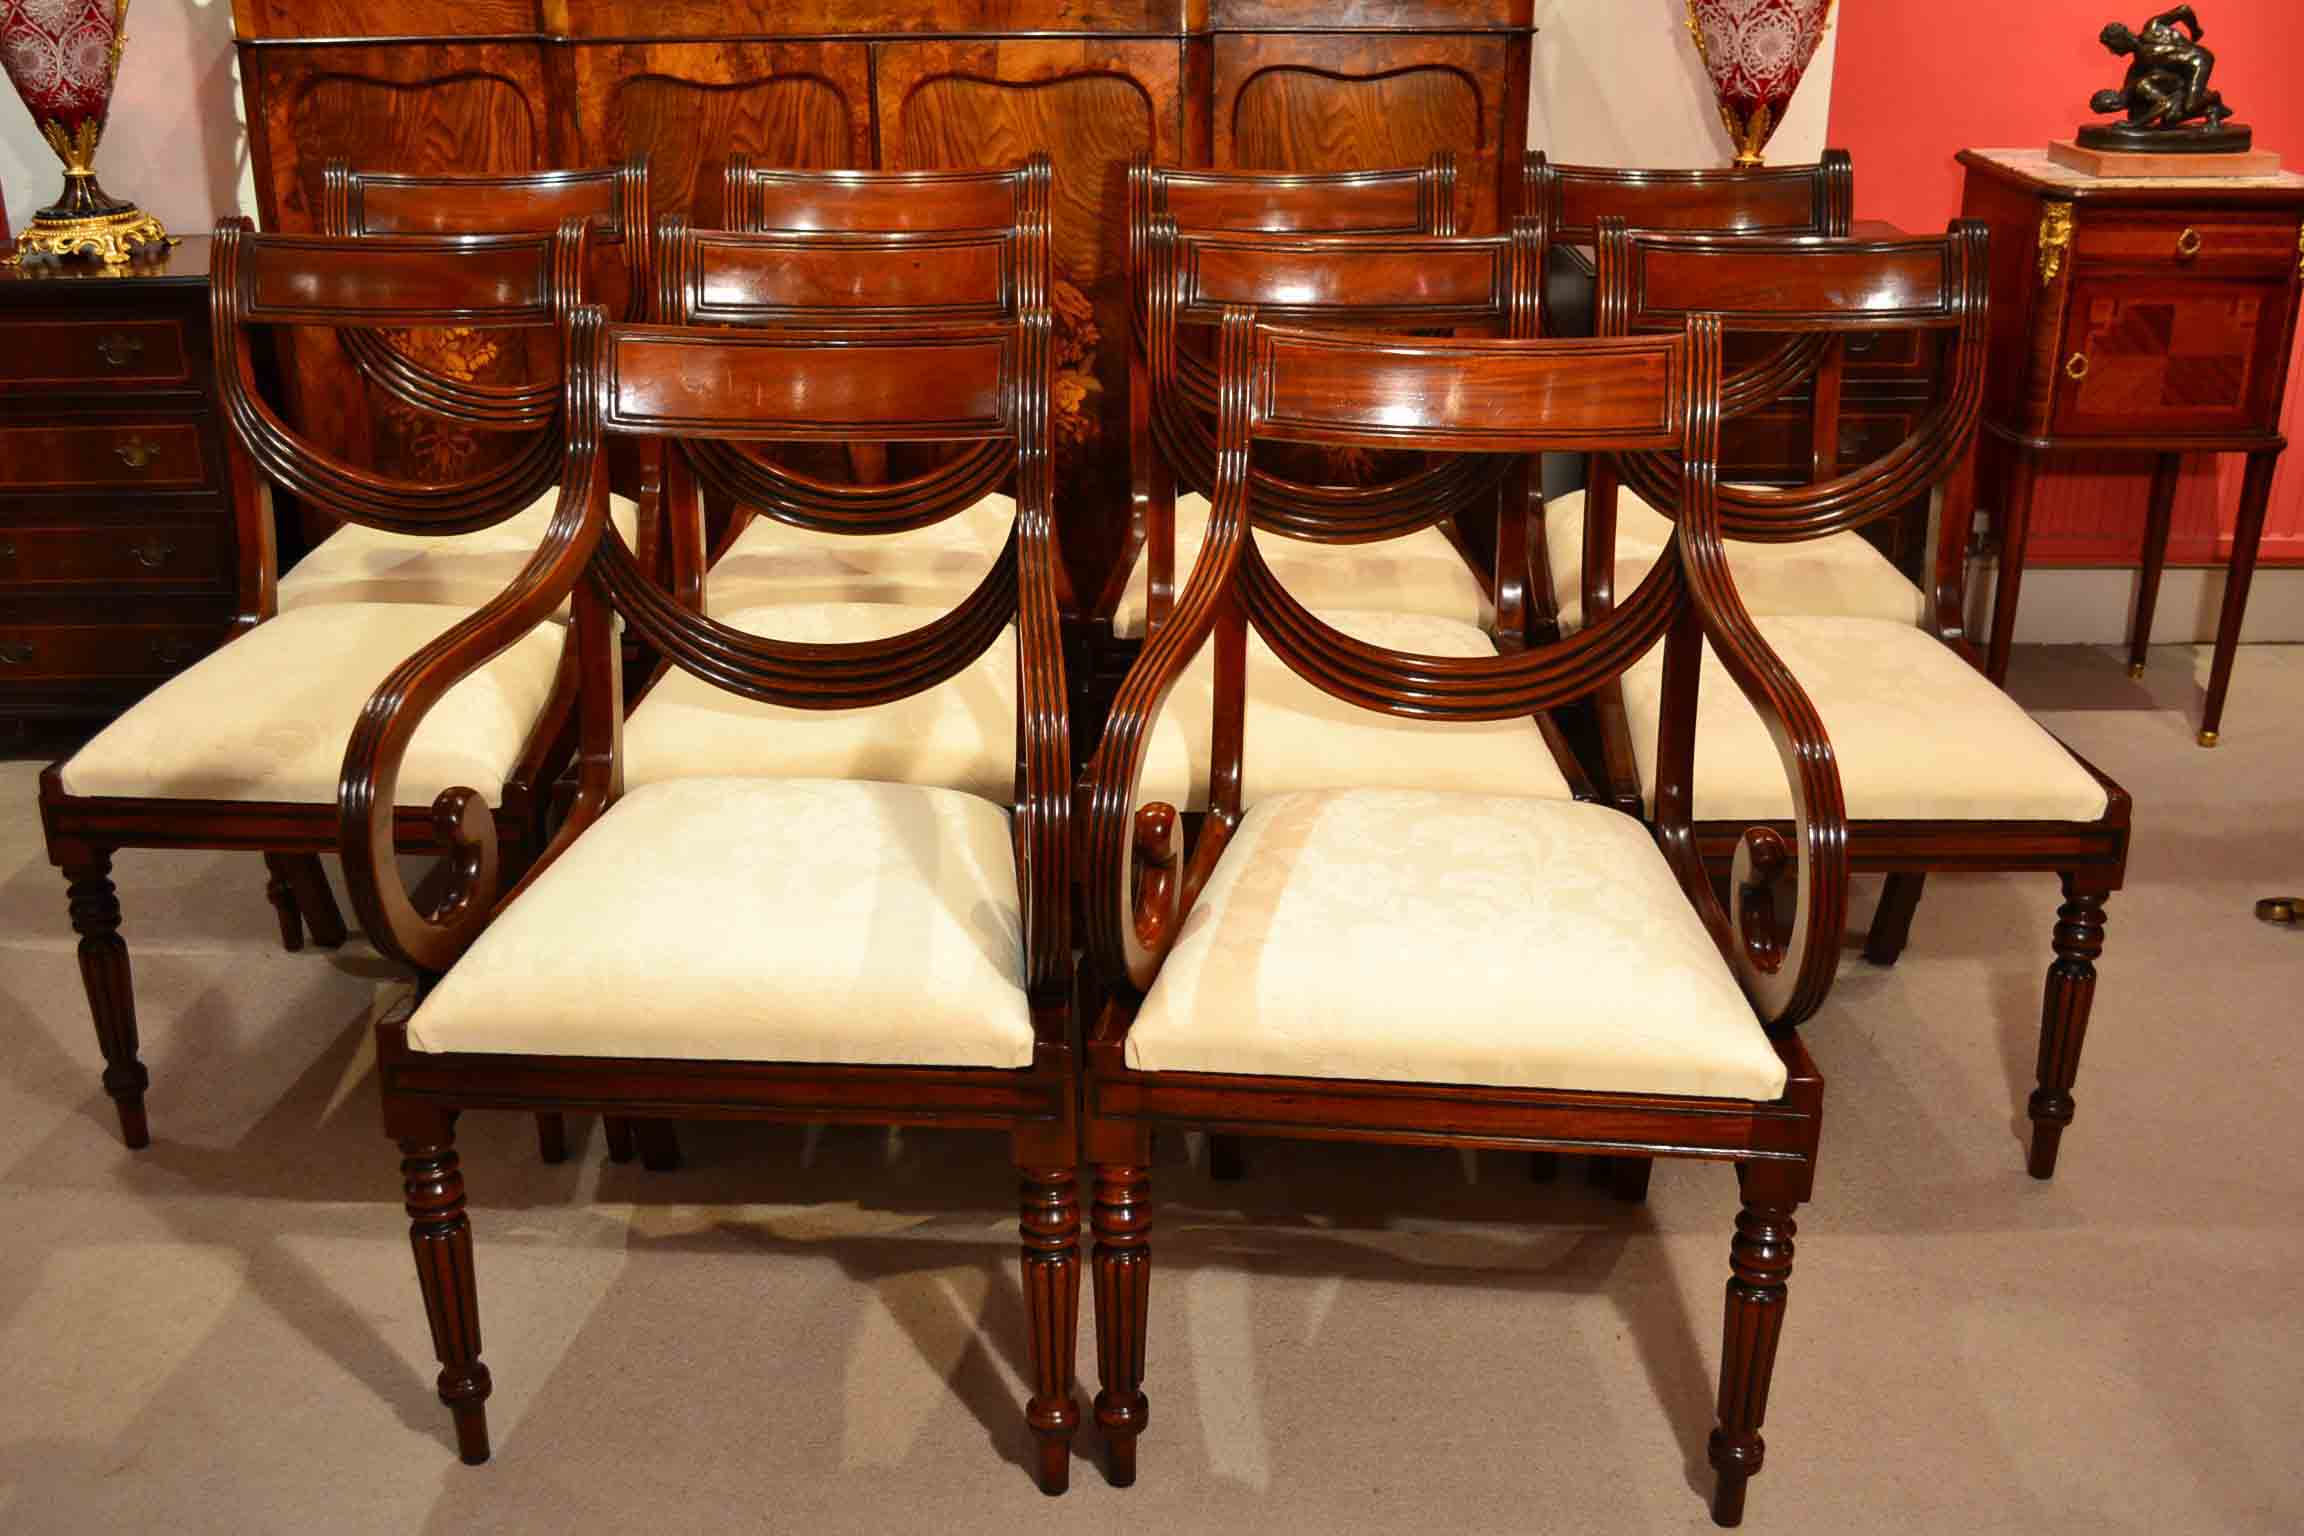 English Regency Dining Table And Ten Drape Chairs For Sale At 1stdibs